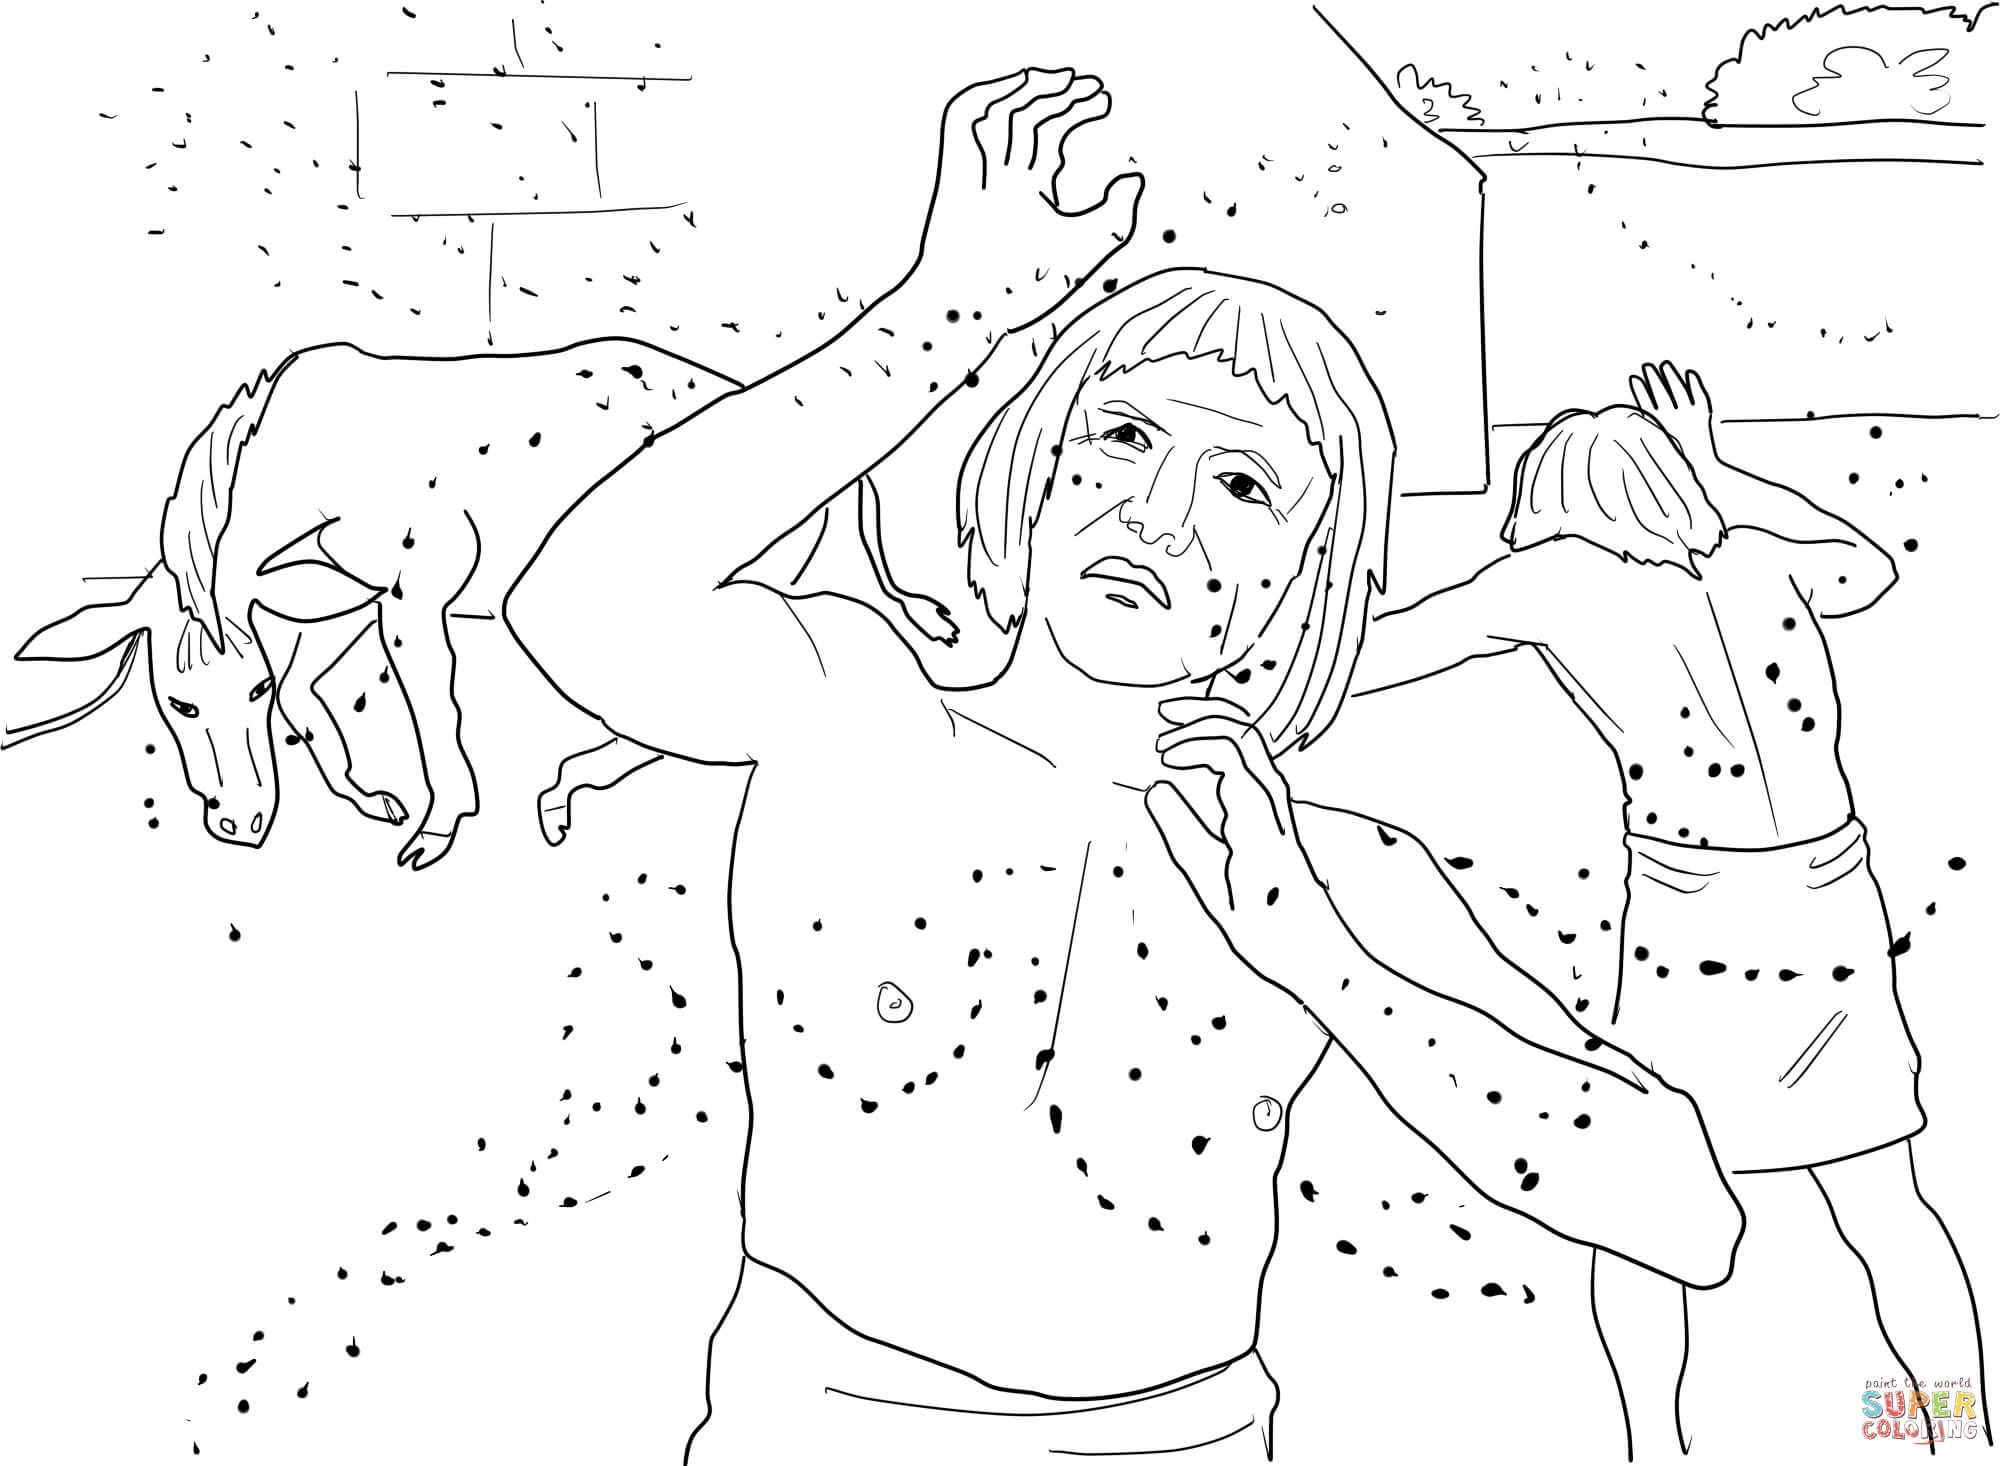 Plague Of Lice Or Gnats Coloring Page